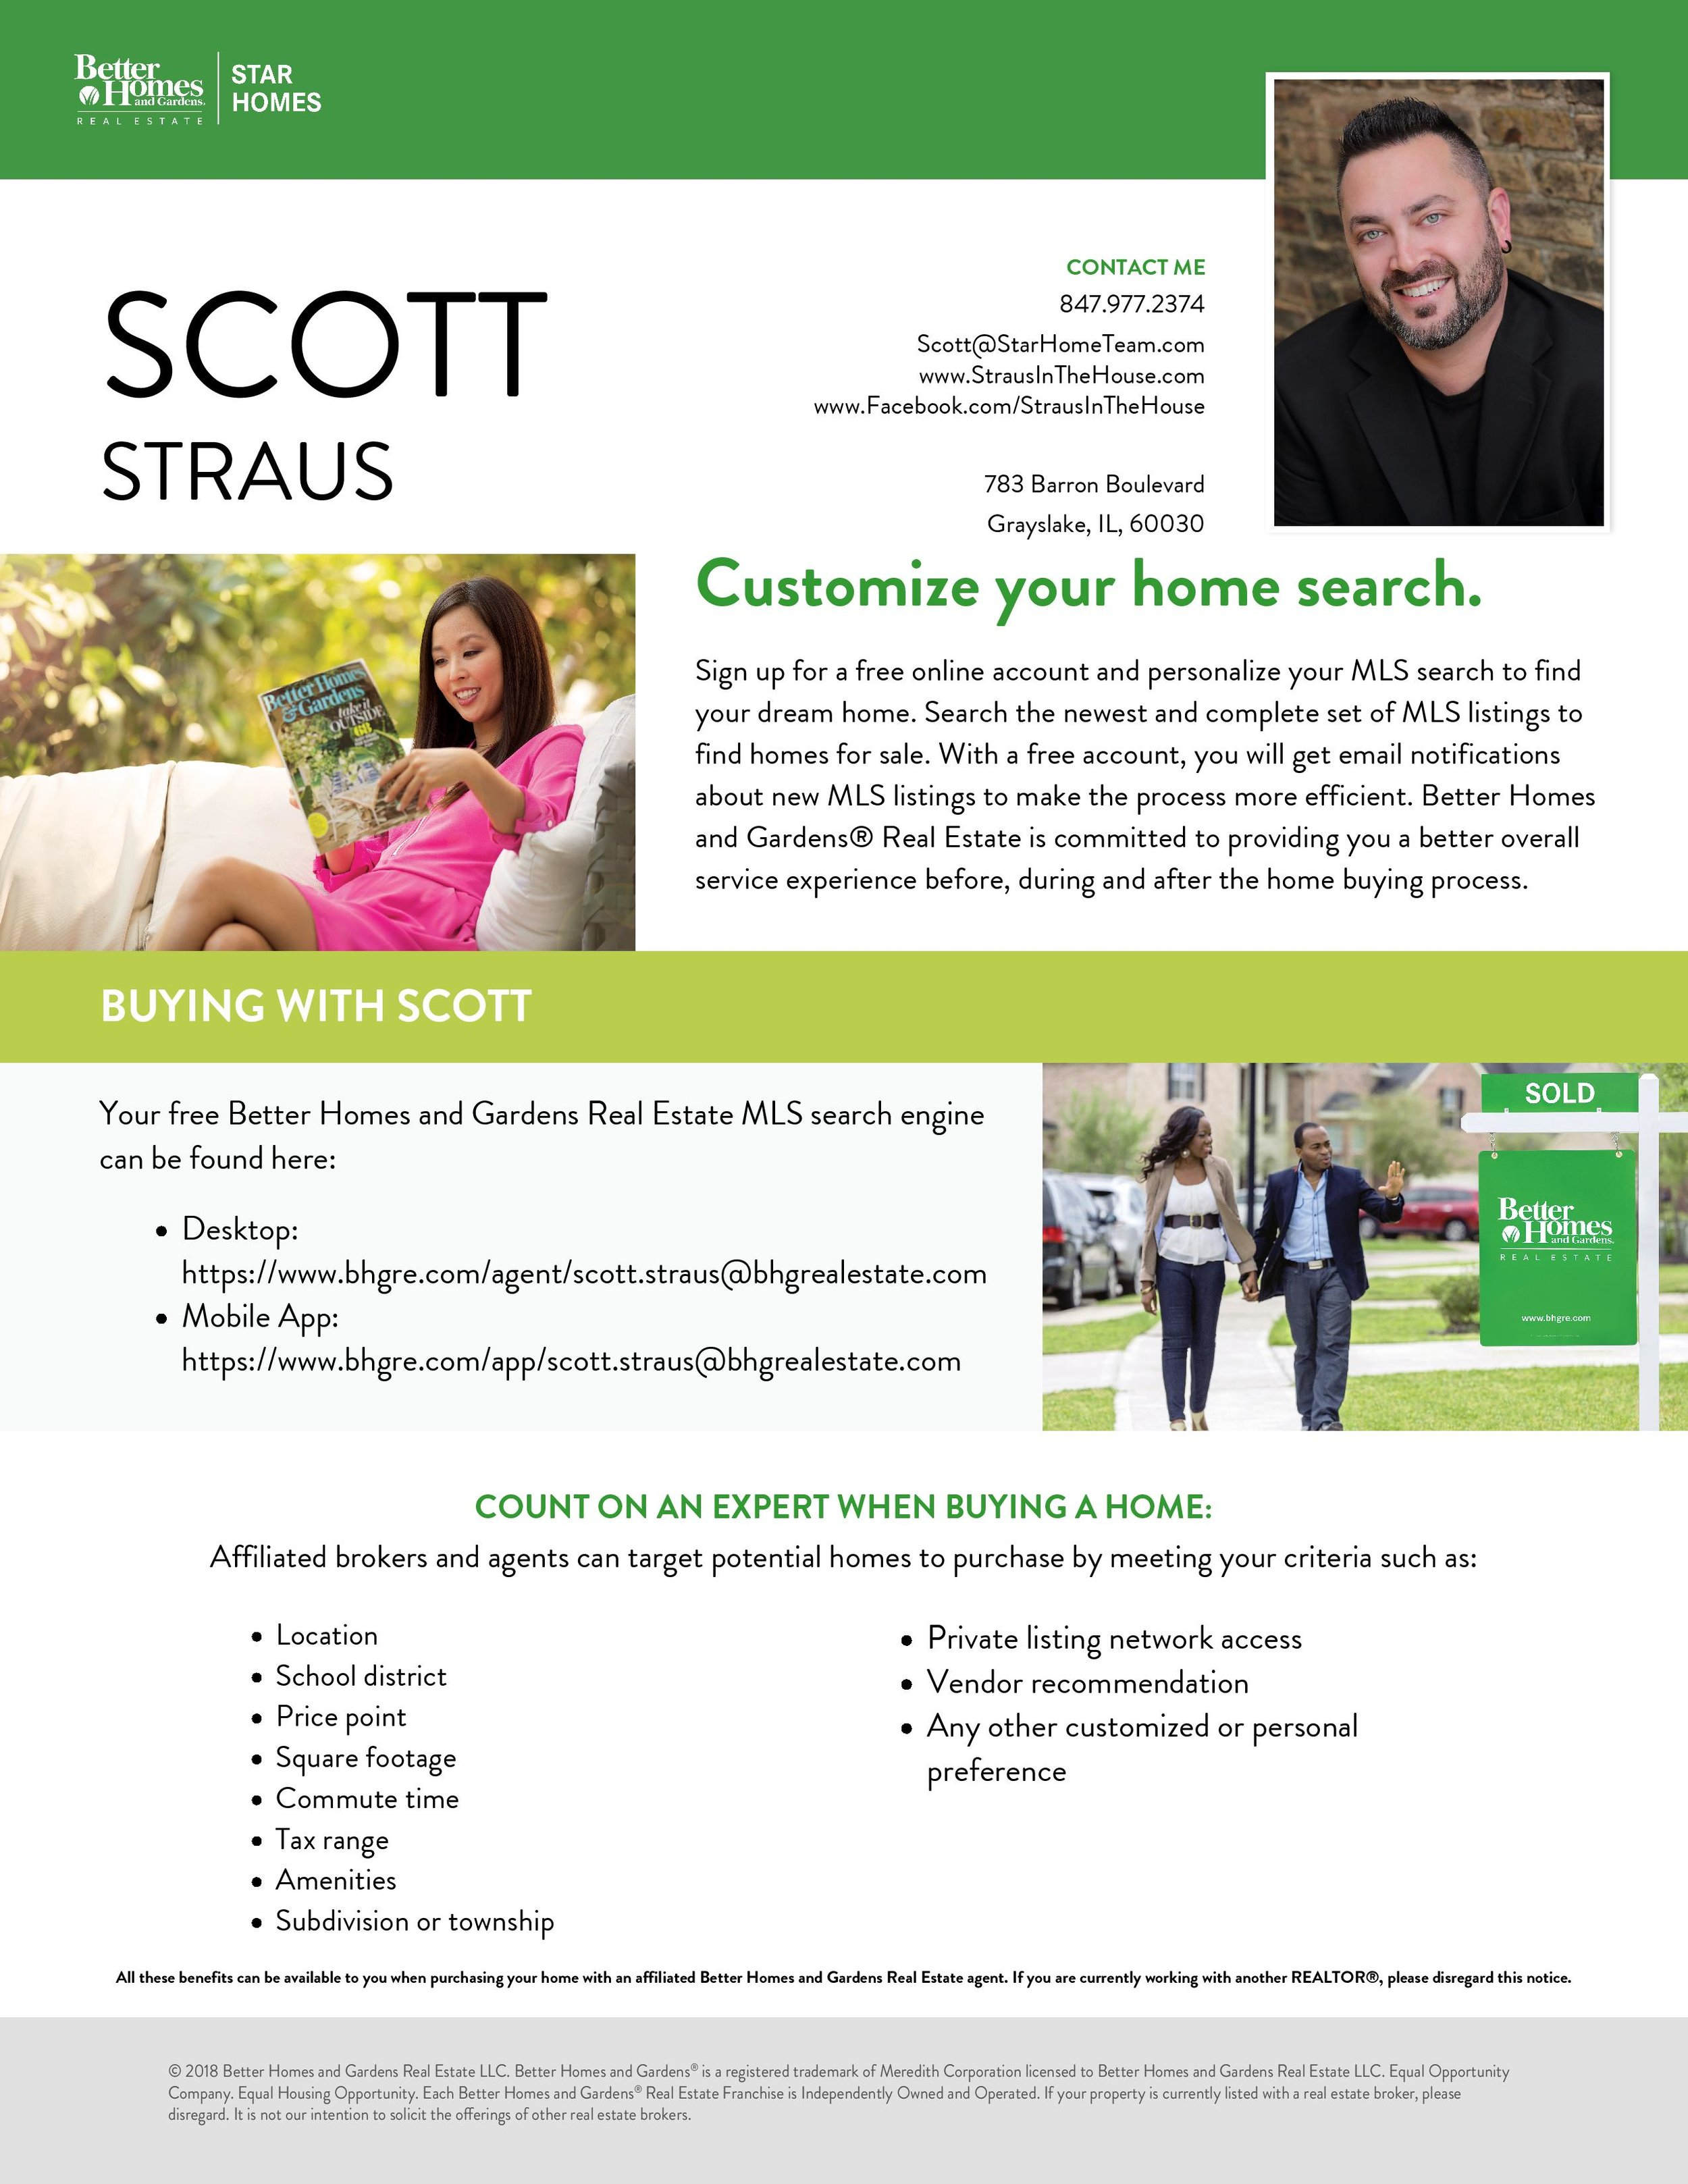 Client Info - Buying With Scott.jpg